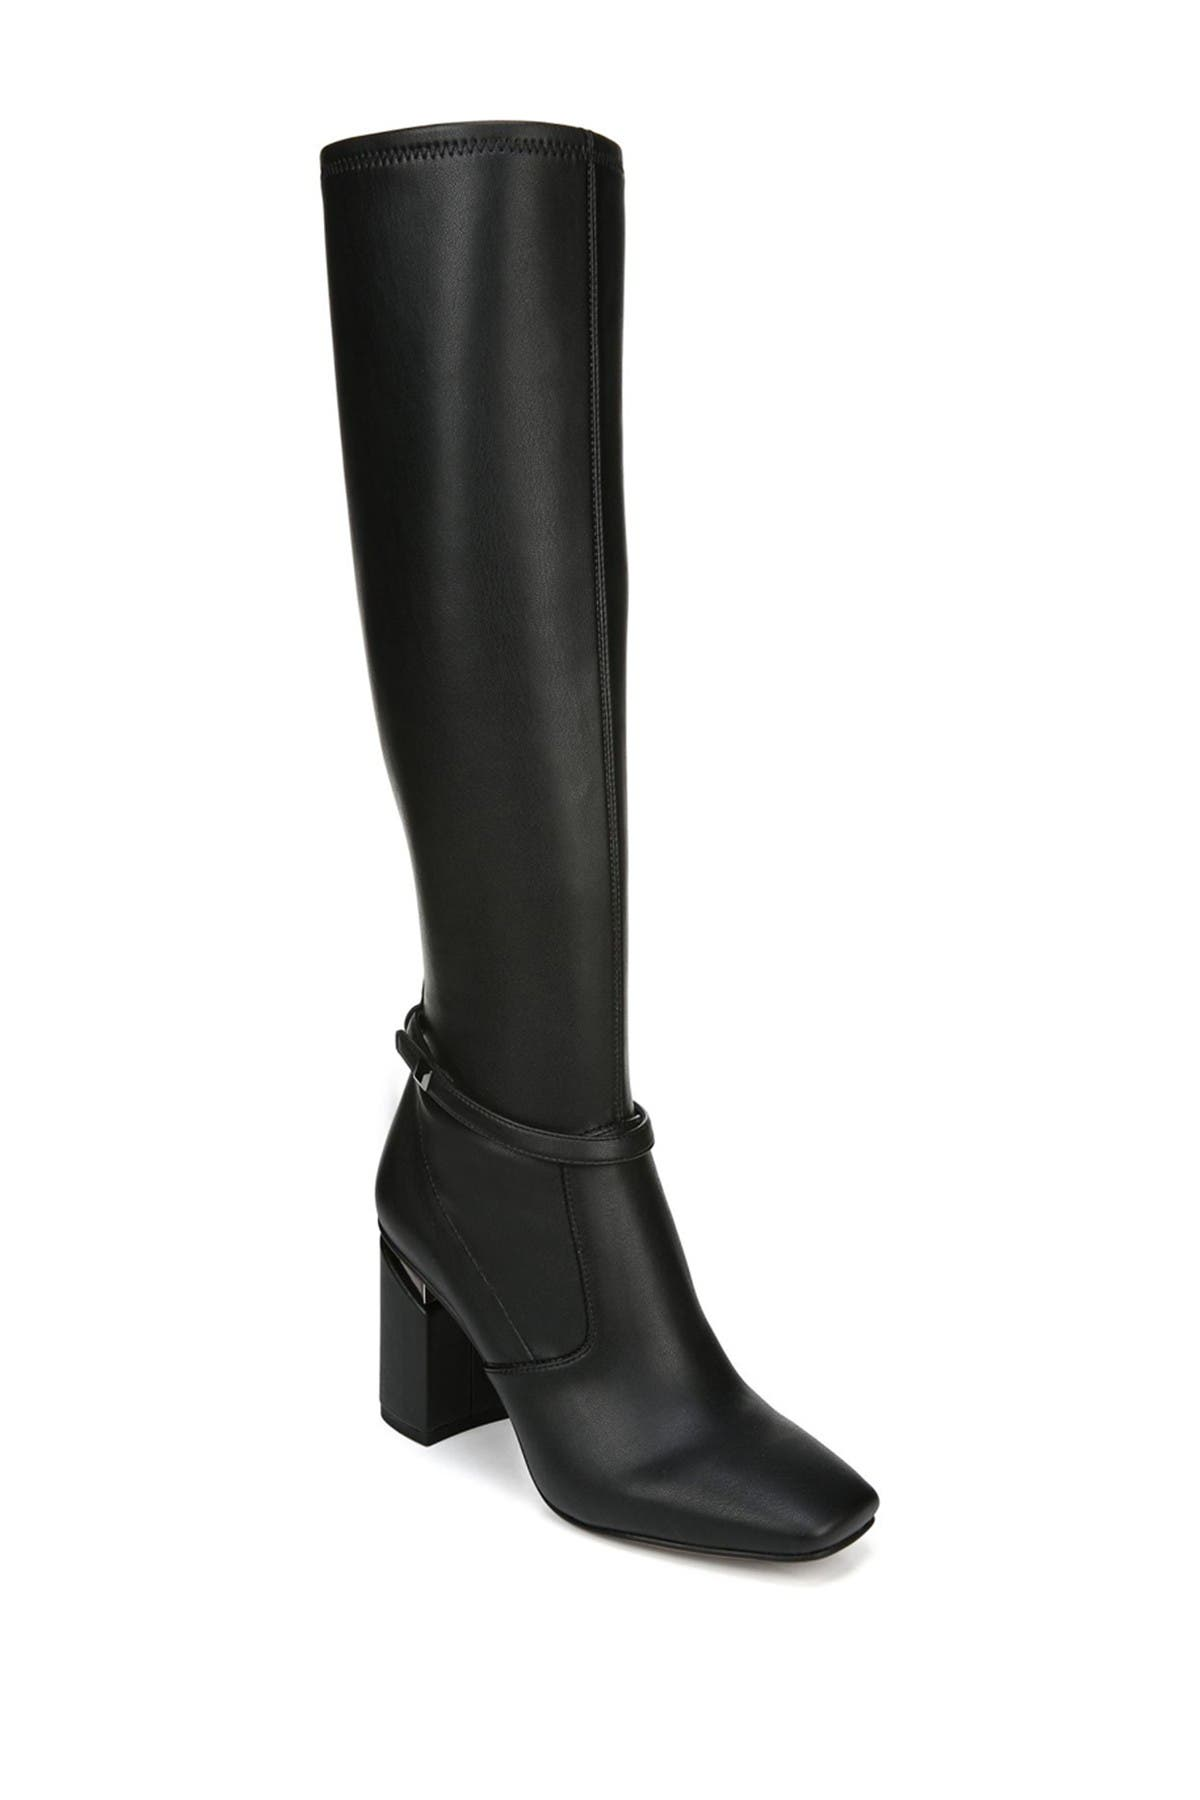 Image of Franco Sarto Roxanne Tall Knee-High Leather Boot